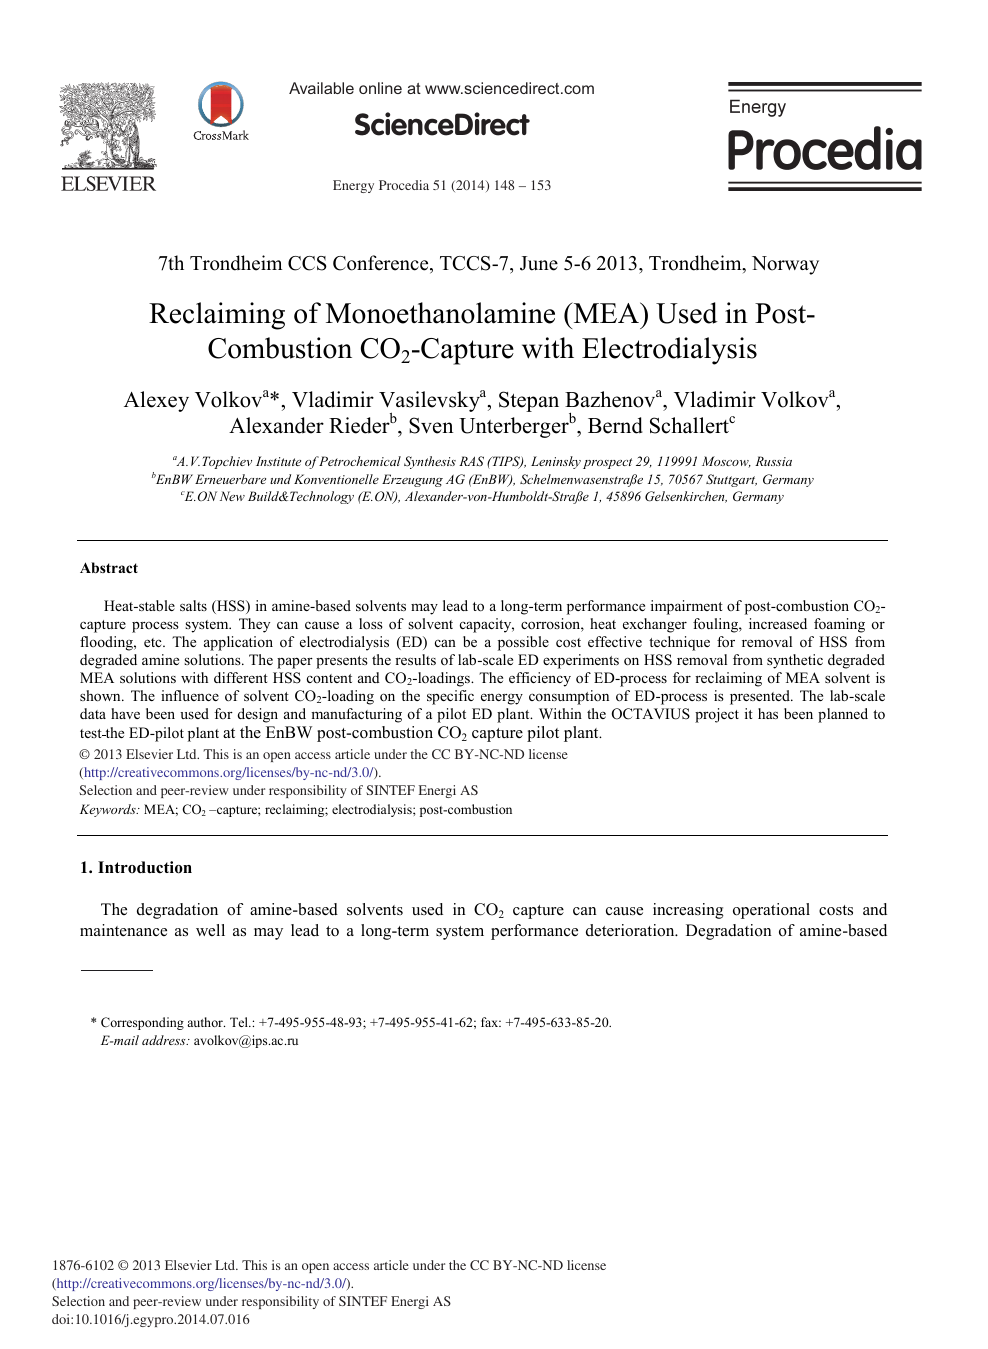 Reclaiming of Monoethanolamine (MEA) Used in Post-Combustion